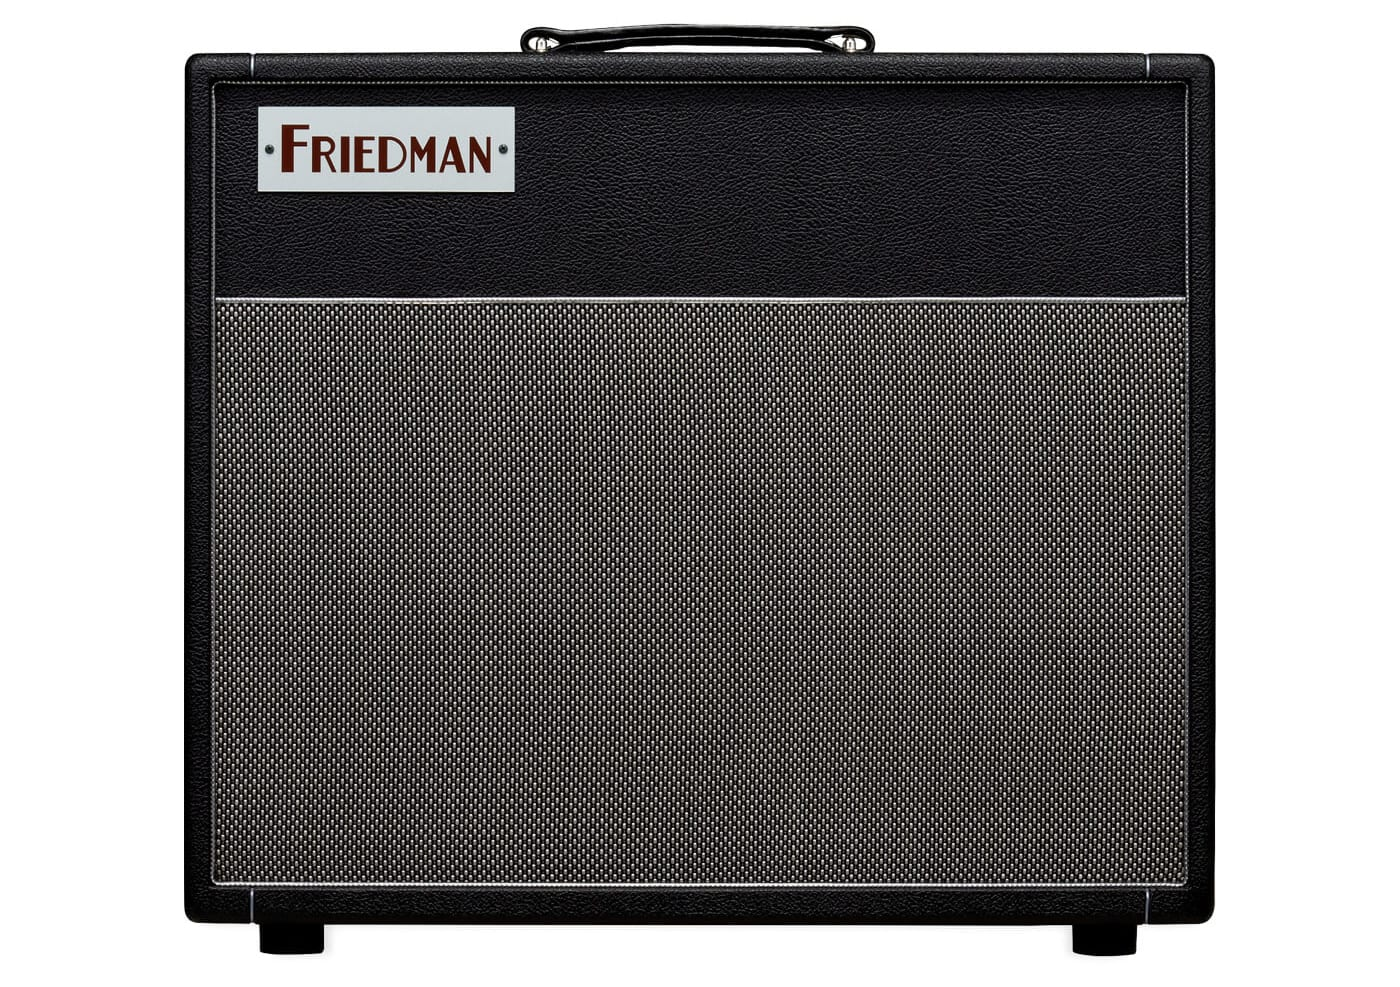 Friedman Twin Sister combo - Two Dirty Shirleys in one amp